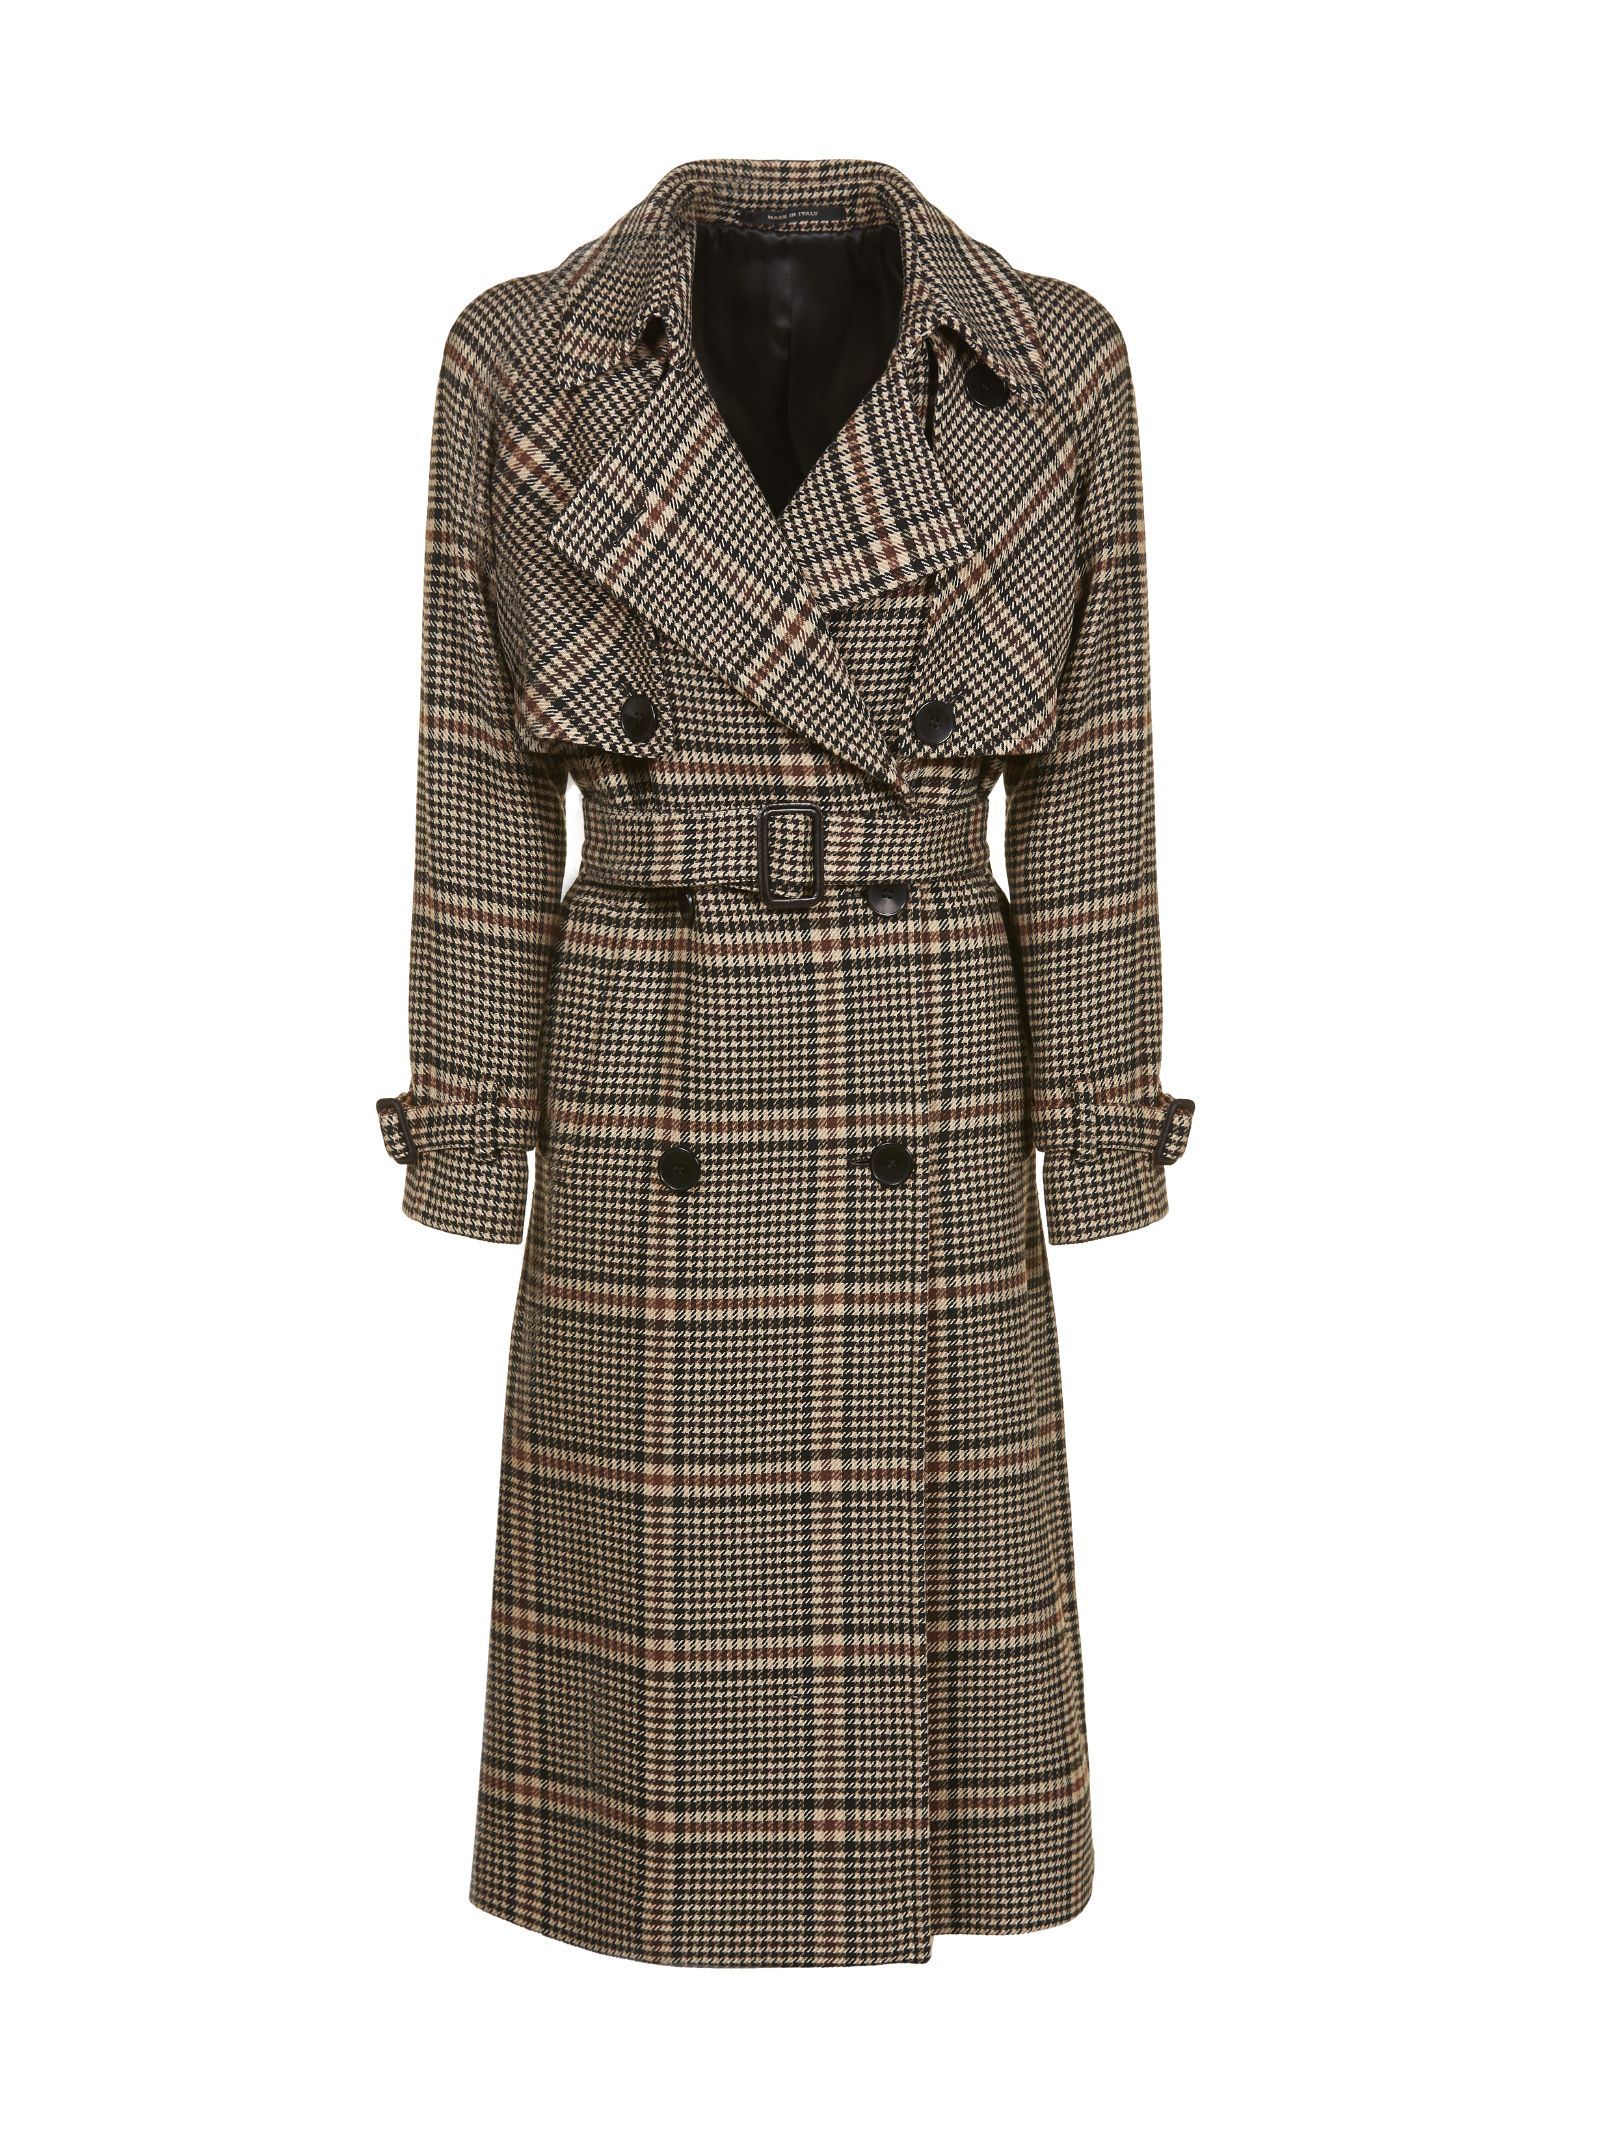 Tagliatore CHECKED TRENCH COAT